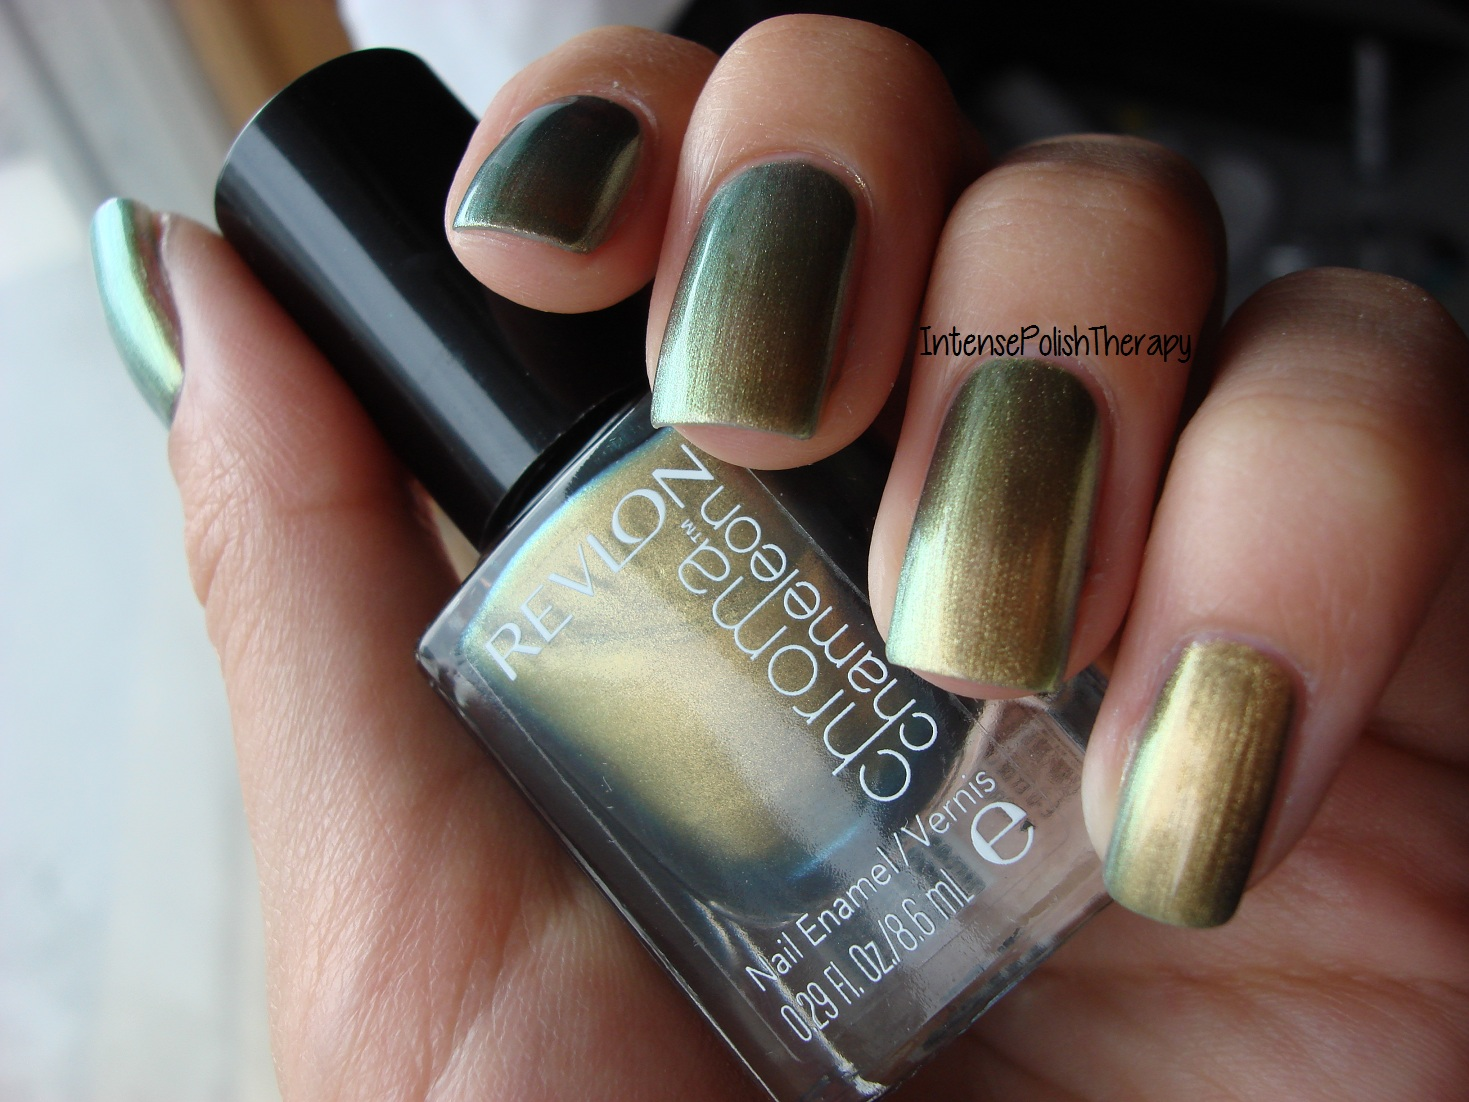 Intense Polish Therapy Revlon Chroma Chameleon Collection Swatches Amp Review